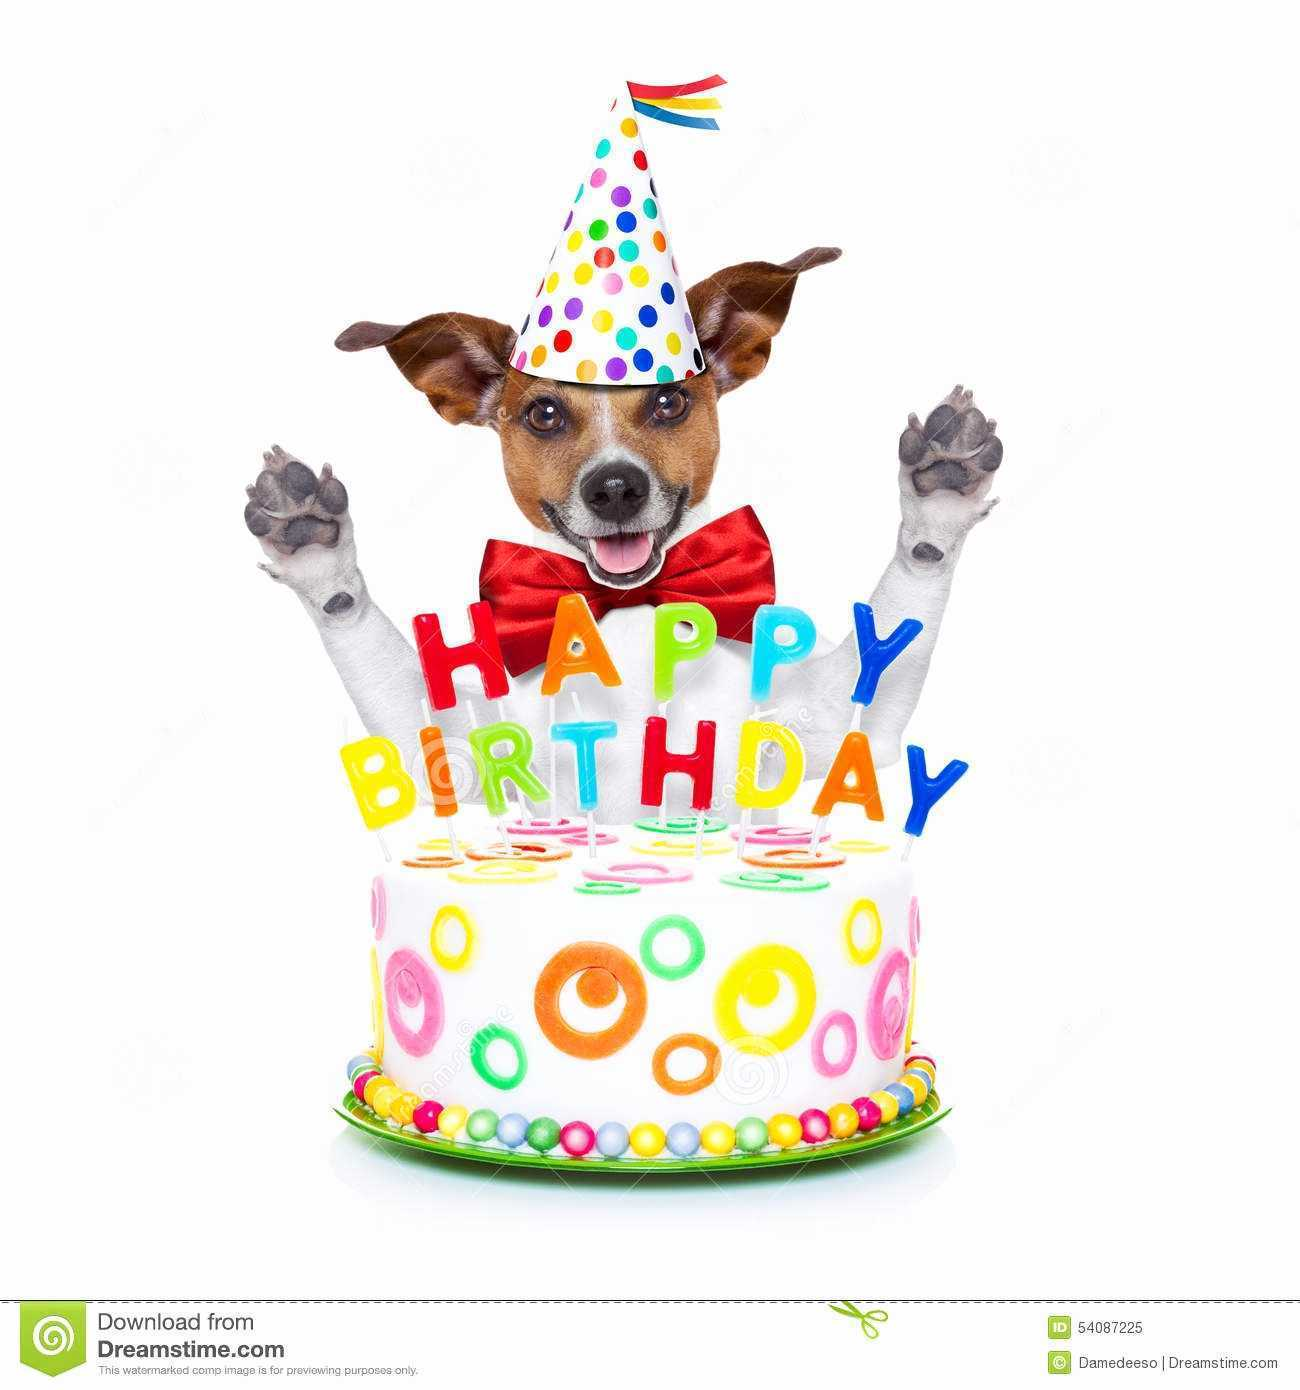 happy birthday dog images free ; happy-birthday-dog-images-free-awesome-happy-birthday-dog-stock-image-image-of-holiday-of-happy-birthday-dog-images-free